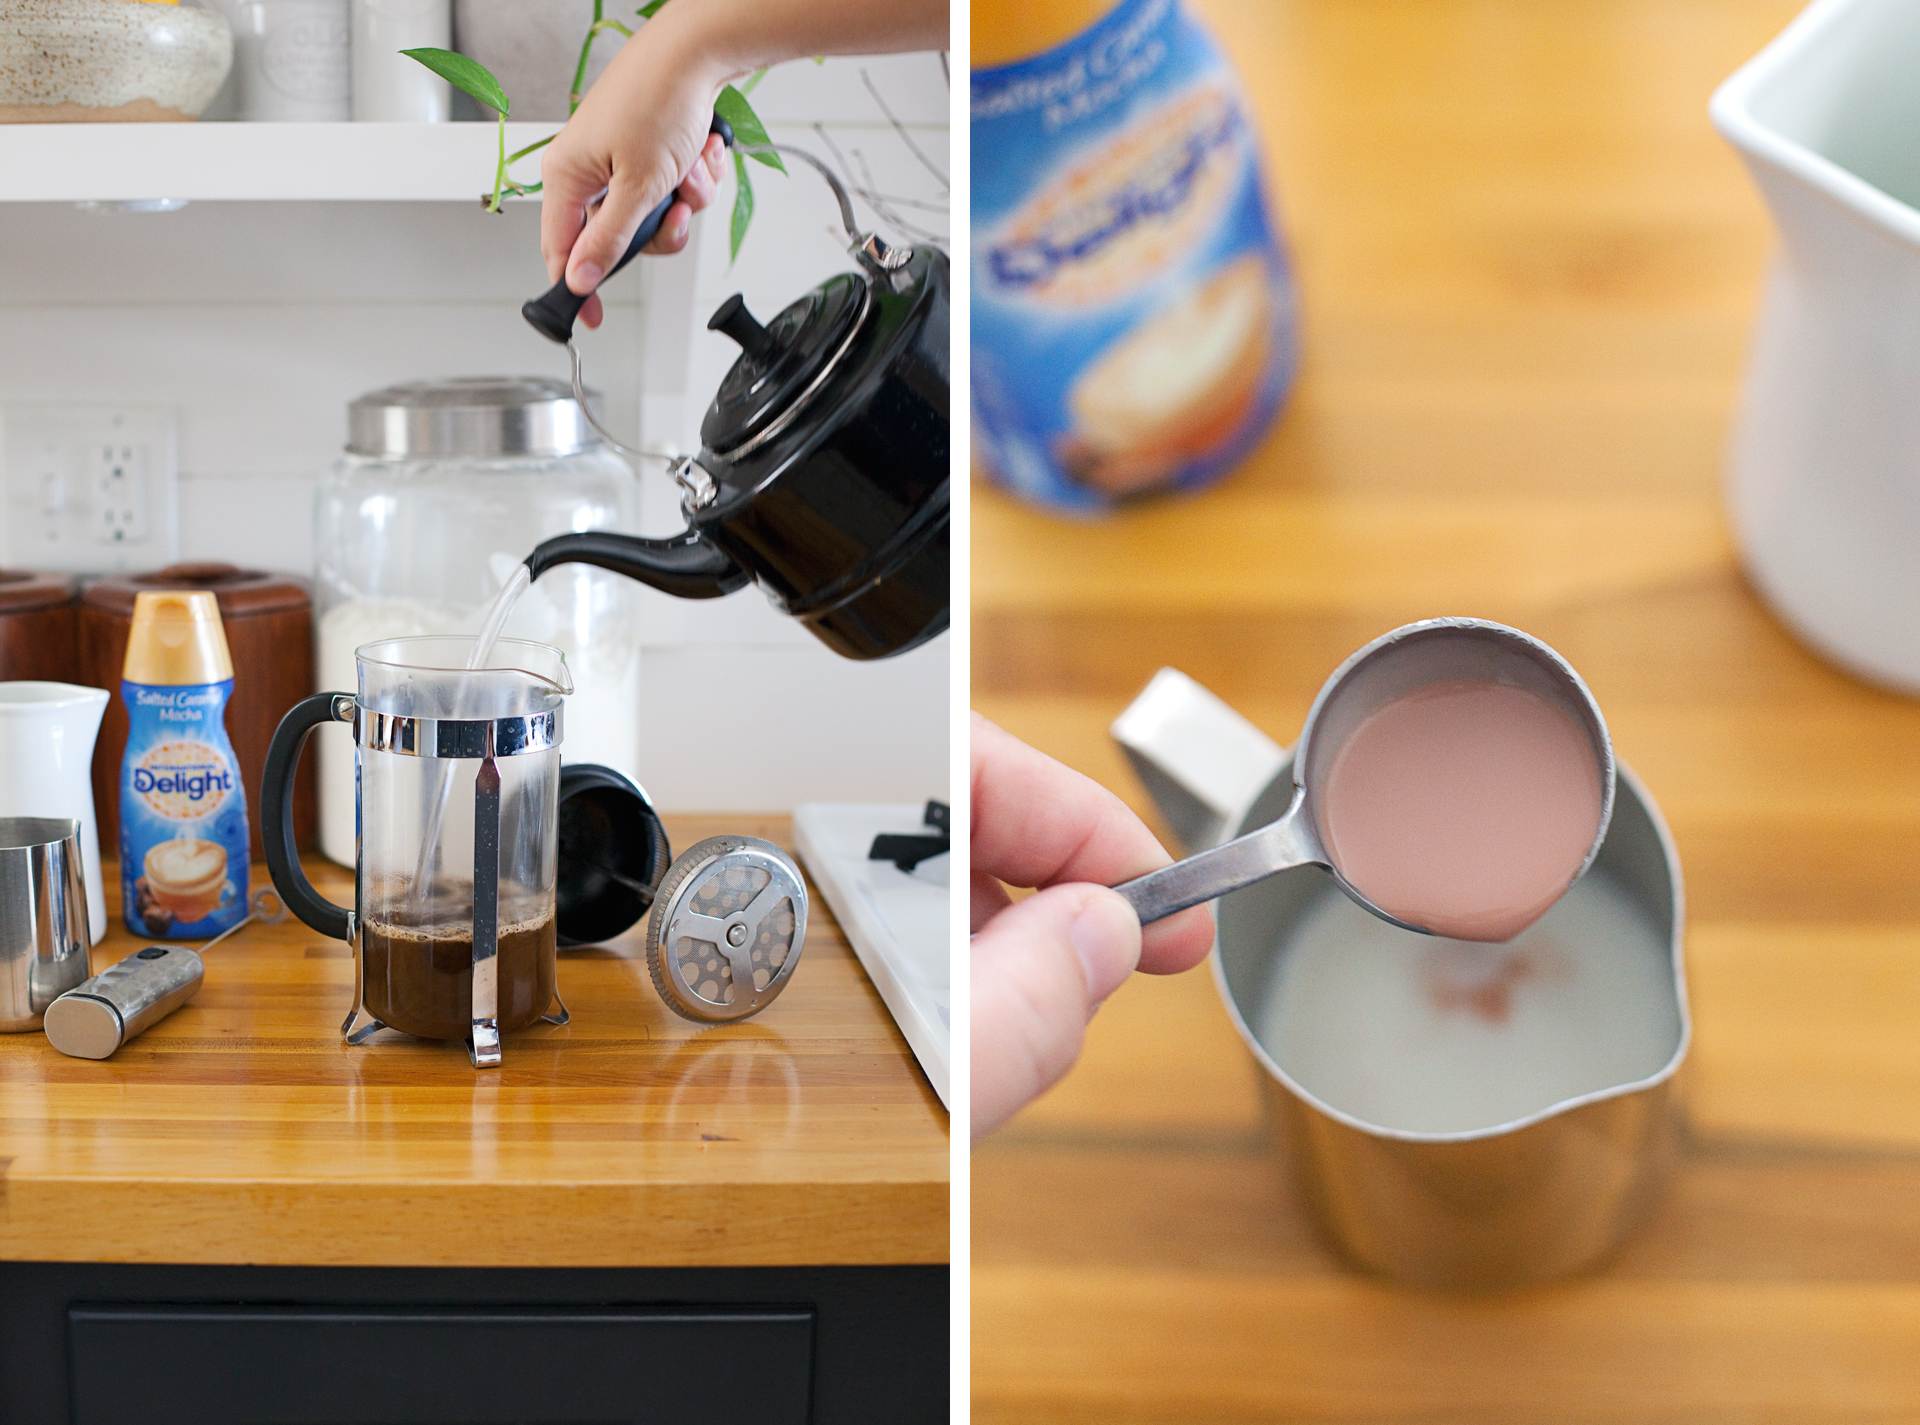 How to Make a Mocha Misto at Home